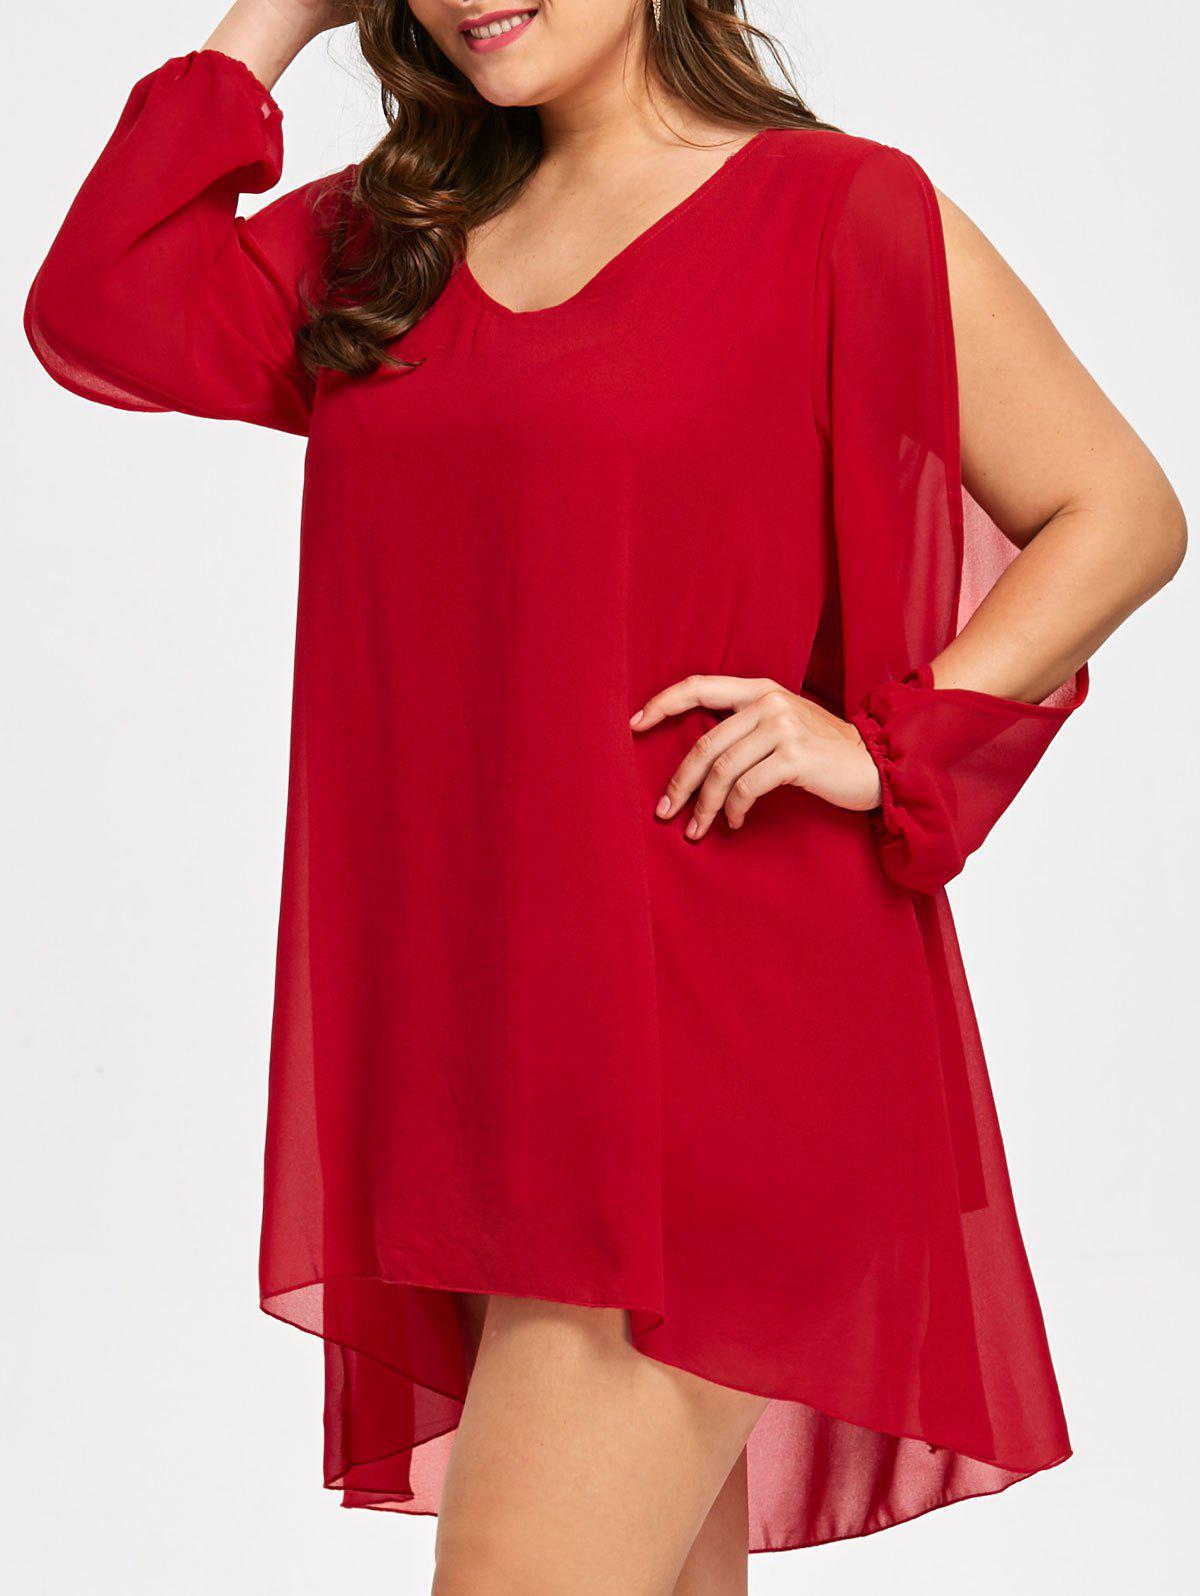 Plus Size Flowy Chiffon Slit Sleeve TopWOMEN<br><br>Size: 2XL; Color: RED; Material: Polyester; Fabric Type: Chiffon; Shirt Length: Long; Sleeve Length: Full; Collar: V-Neck; Style: Casual; Season: Fall,Spring; Embellishment: Ruffles; Pattern Type: Solid; Weight: 0.3200kg; Package Contents: 1 x Top;